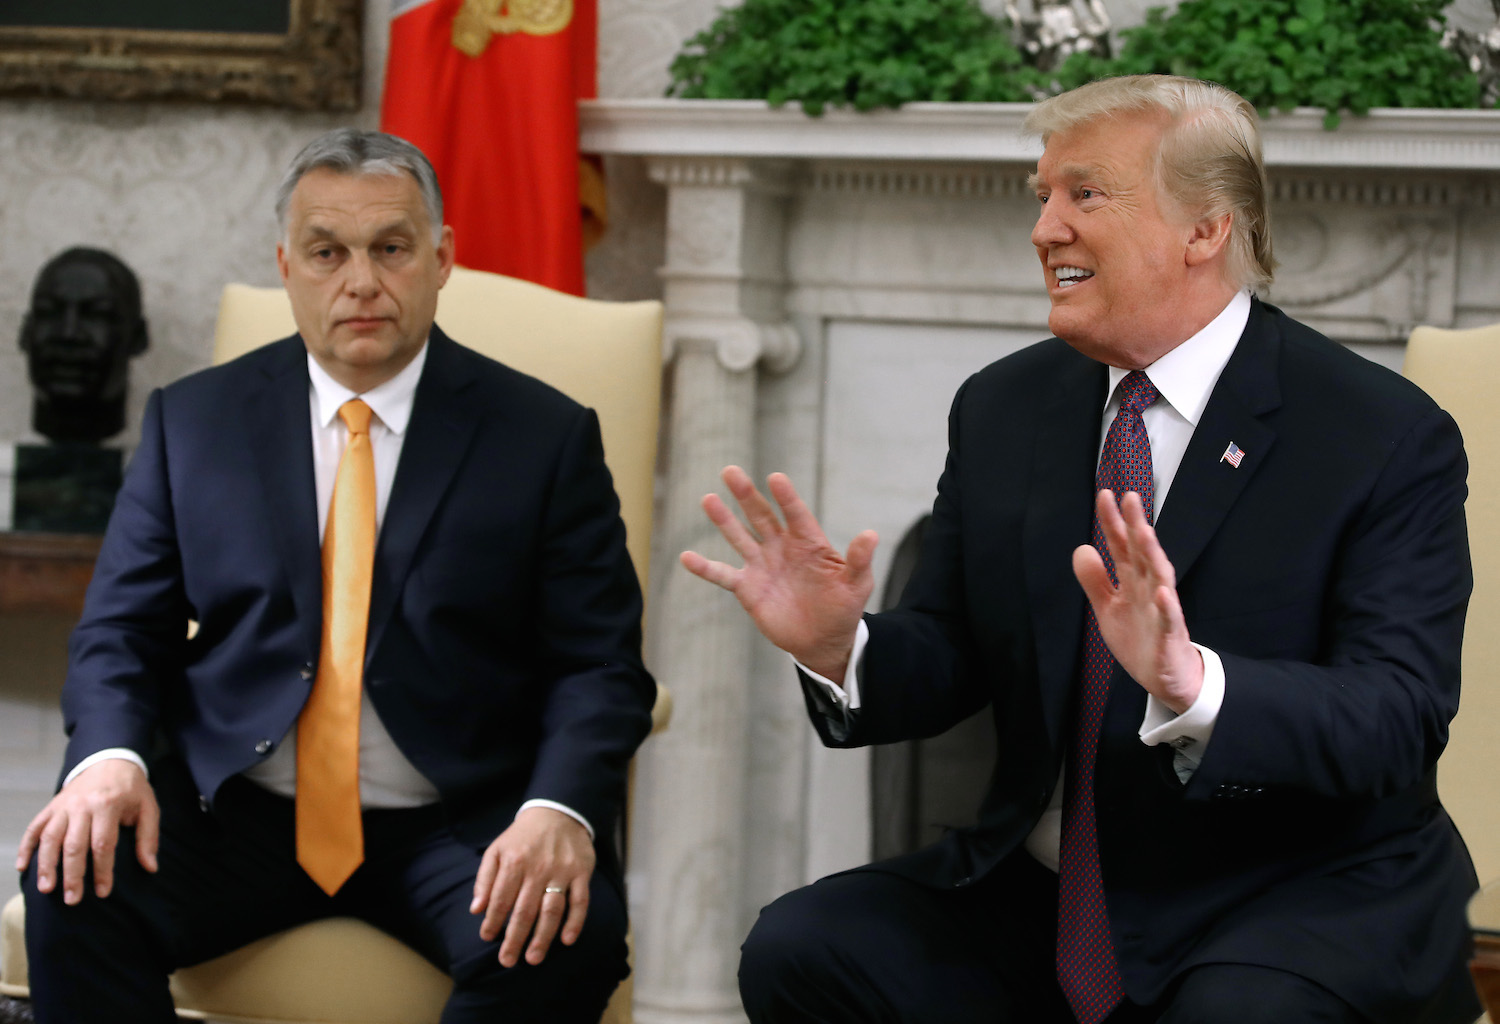 WASHINGTON, DC - MAY 13: U.S. President Donald Trump speaks to the media during a meeting with Hungarian Prime MinisterViktor Orban, in the Oval Office on May 13, 2019 in Washington, DC. President Trump took questions on trade with China, Iran and other topics. (Photo by Mark Wilson/Getty Images)